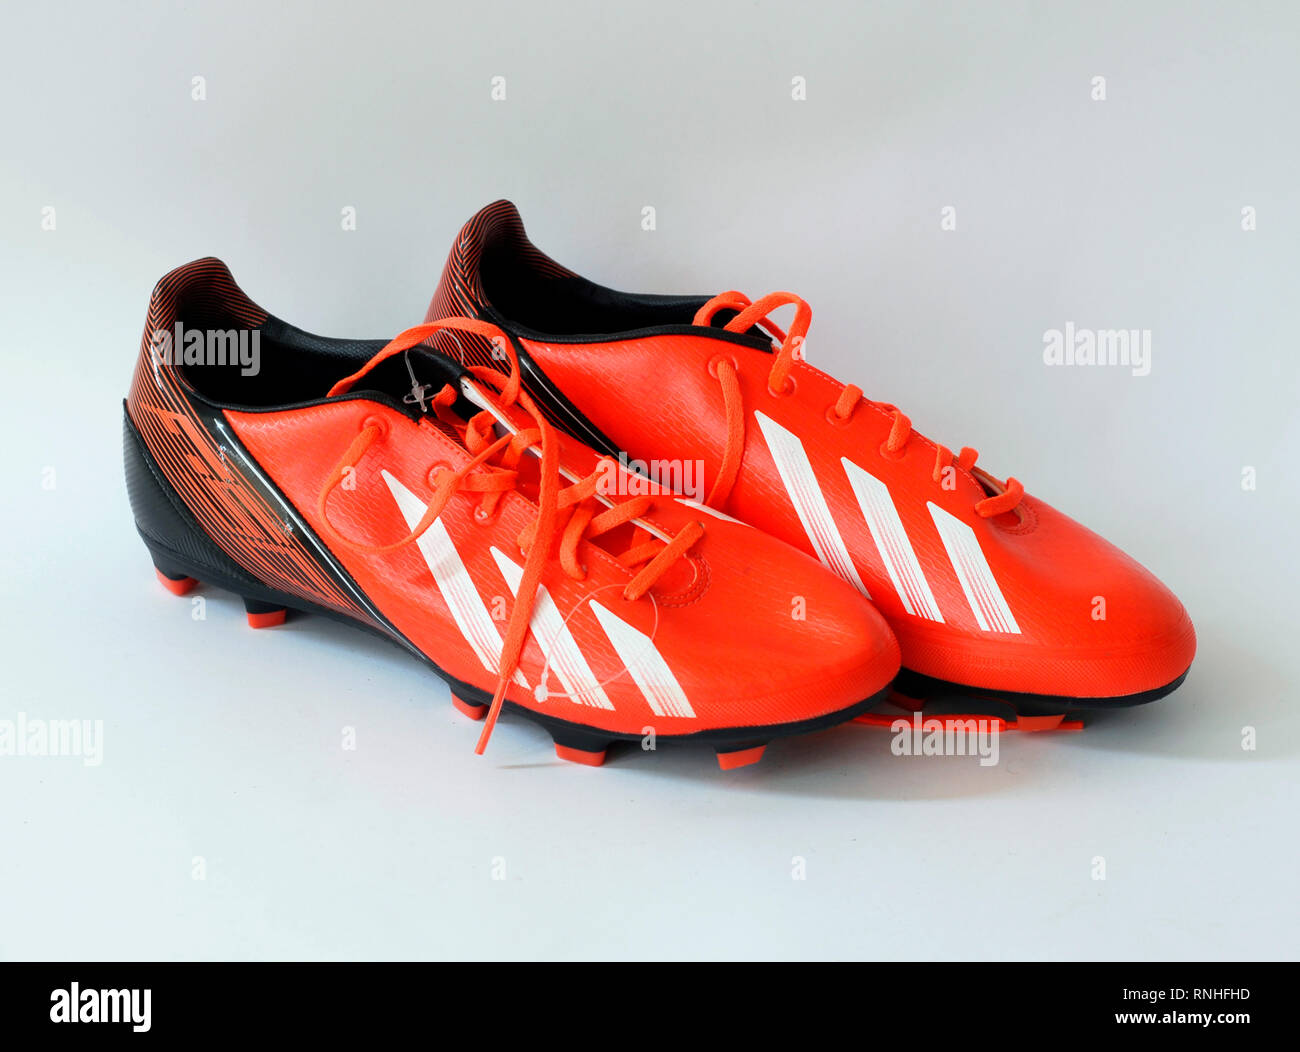 InfrarougeEn Fait Football De Orange F30 couleur Adidas Chaussures odWrQCxBe